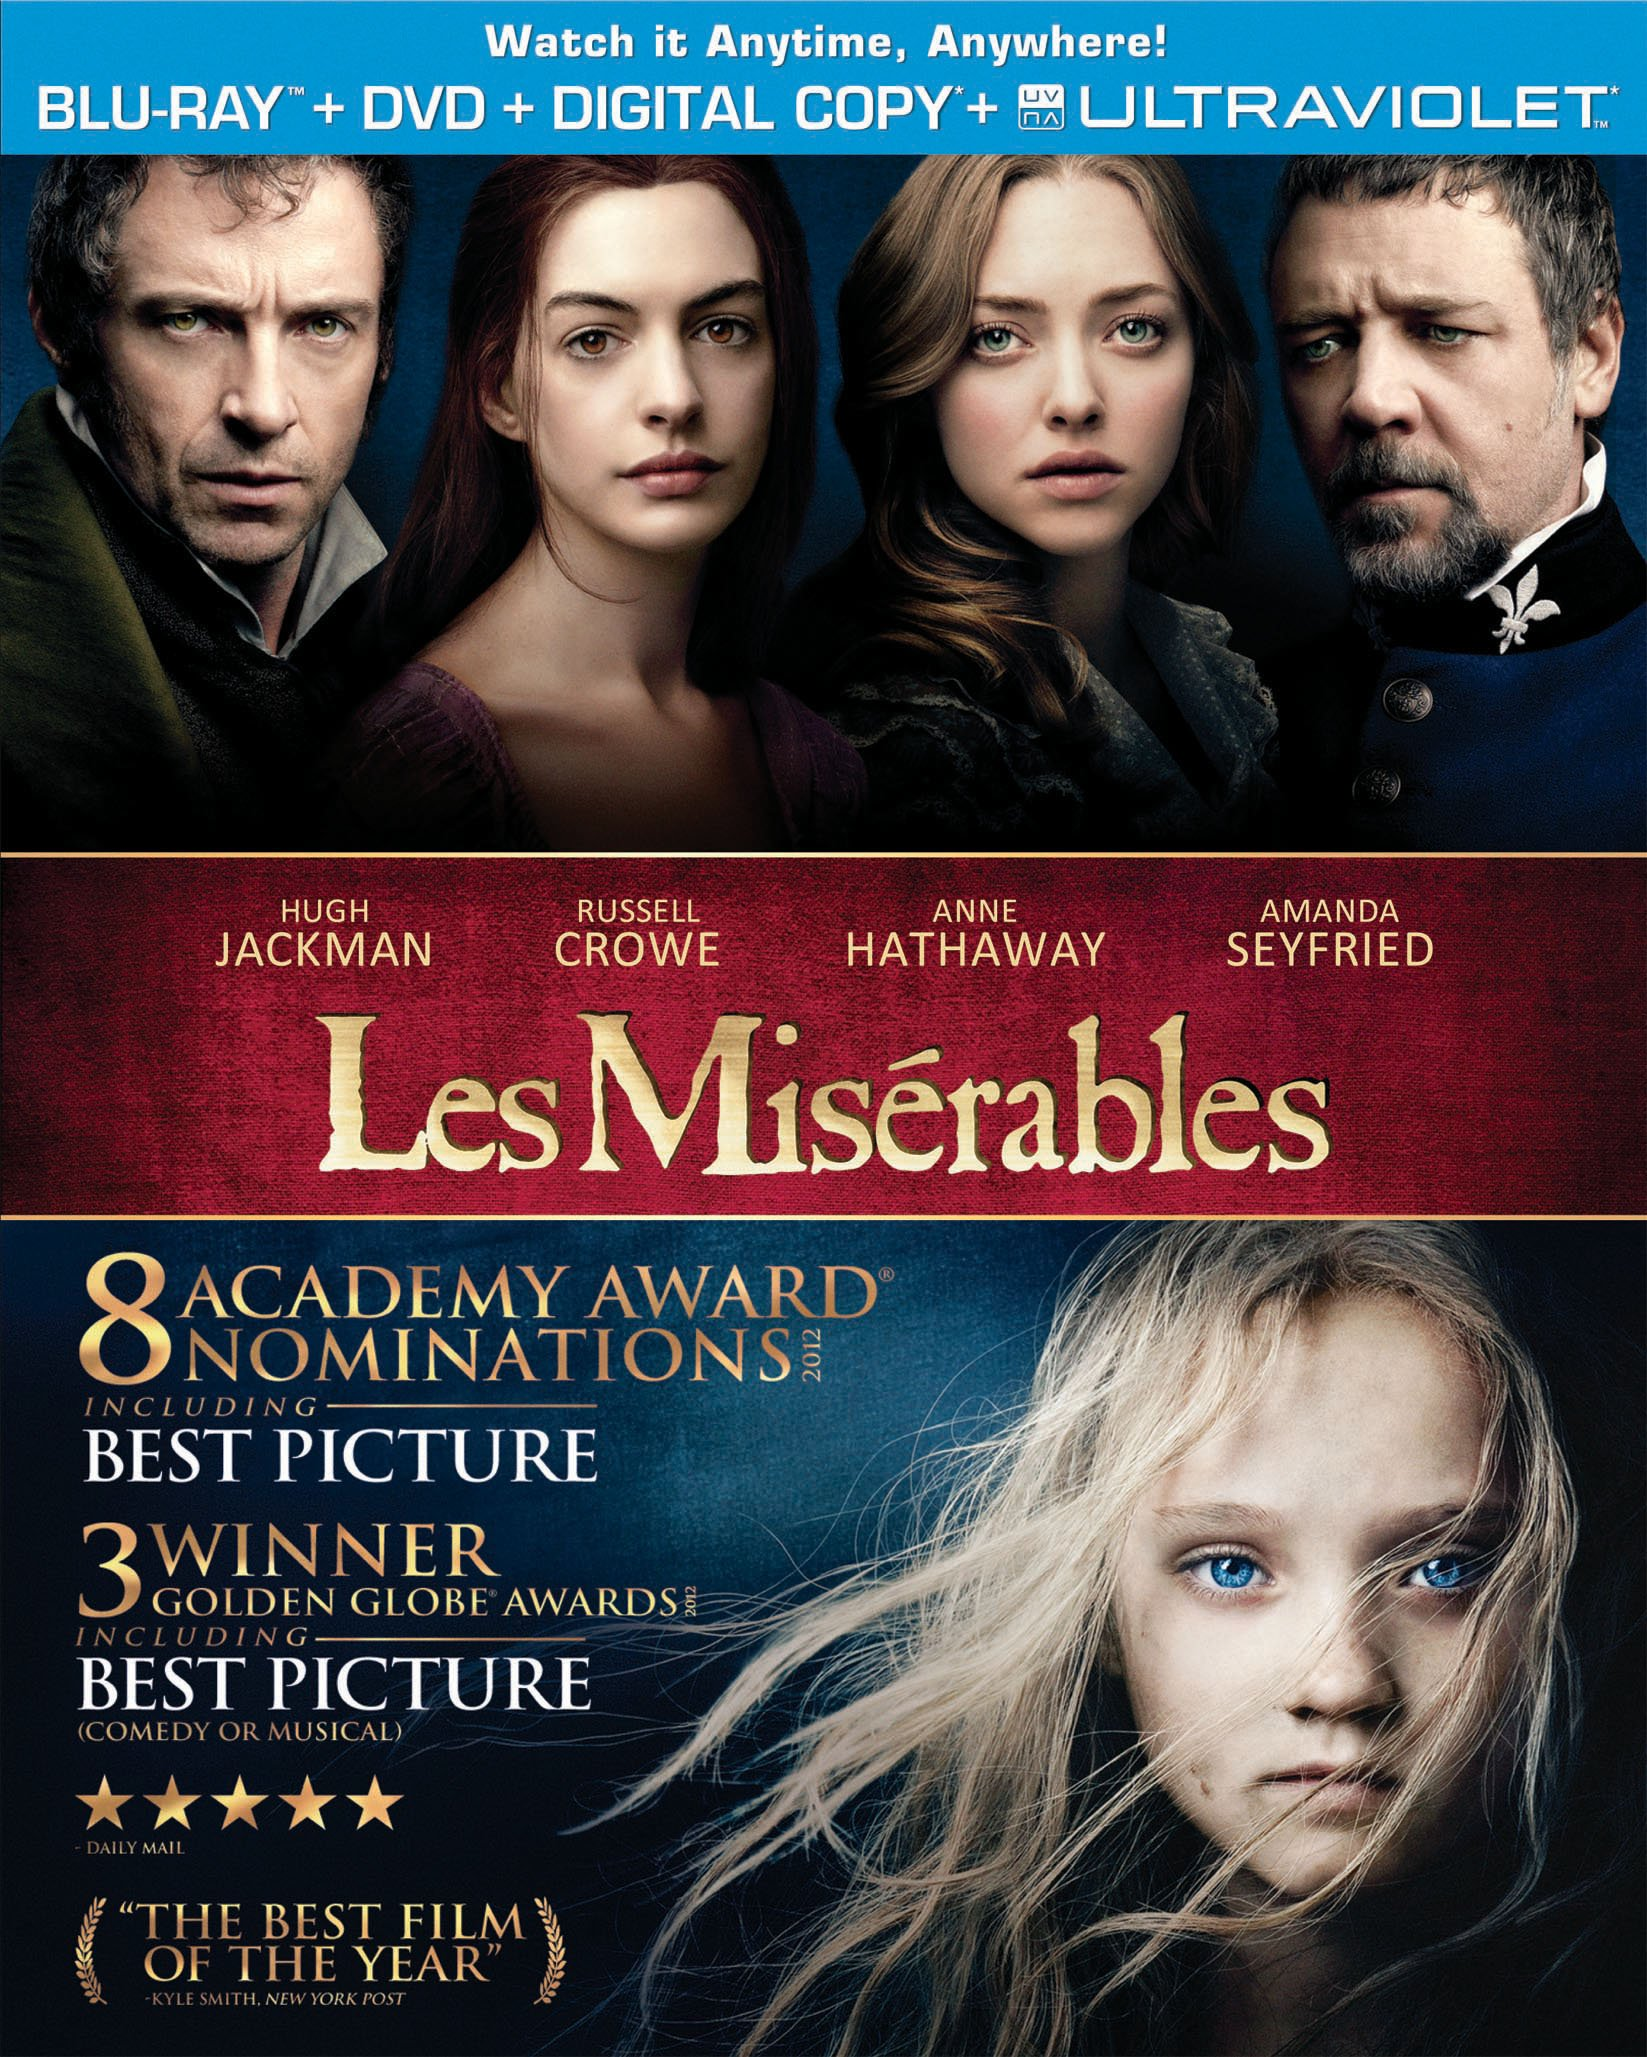 The Les Miserables Cast Vocally Warms Up For Blu ray and DVD Release The Les Miserables Cast Vocally Warms Up For Blu ray and DVD Release